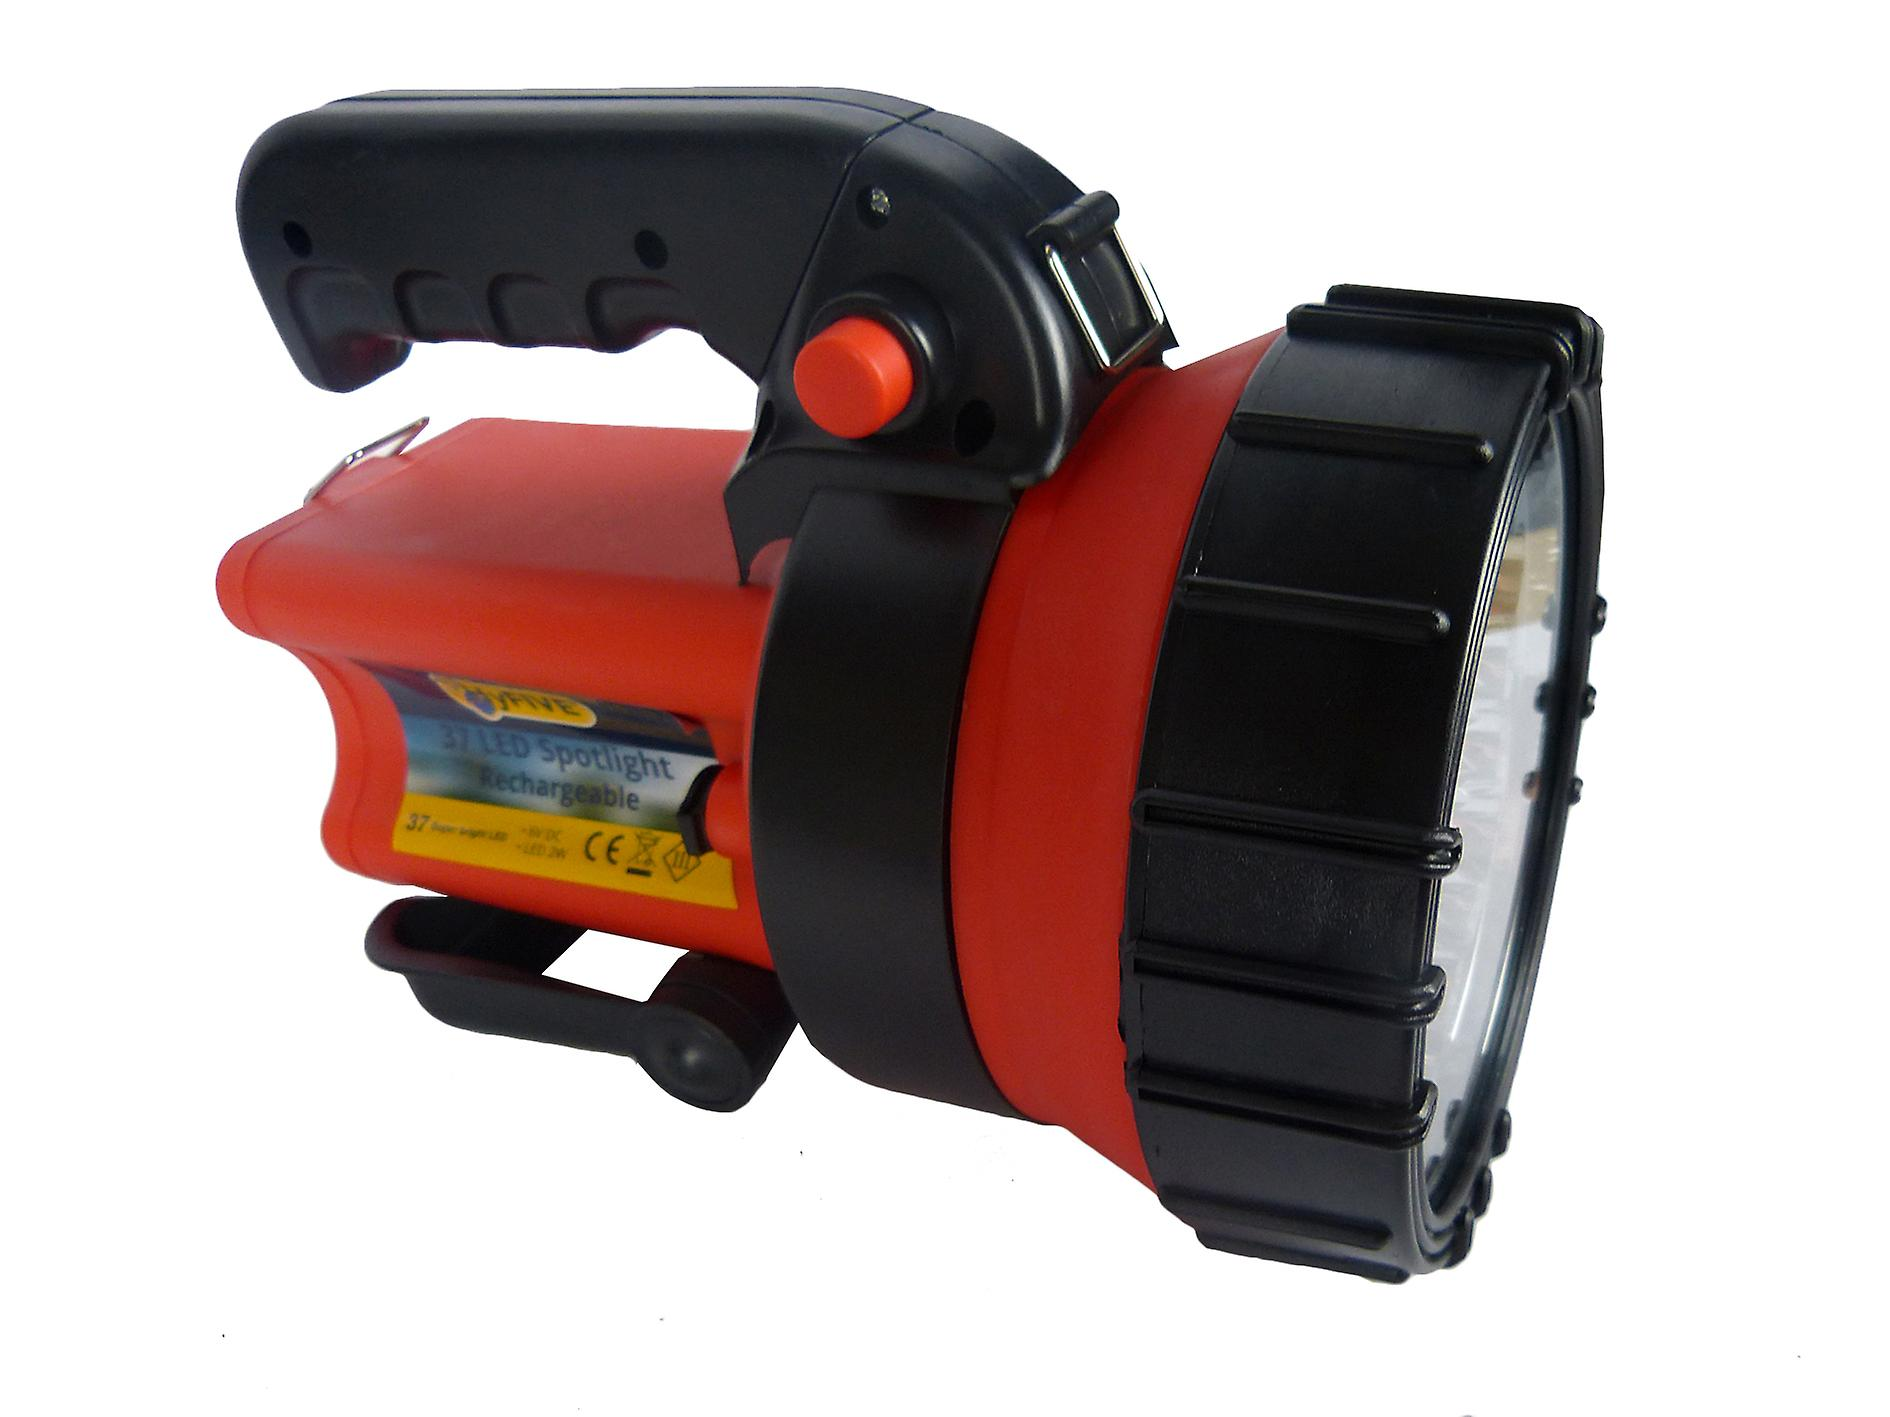 Rechargeable Torch Super Bright 37 LED Spot Lamp Flashlight Torch with Swivel Handle & Stand Battery & Charger Included